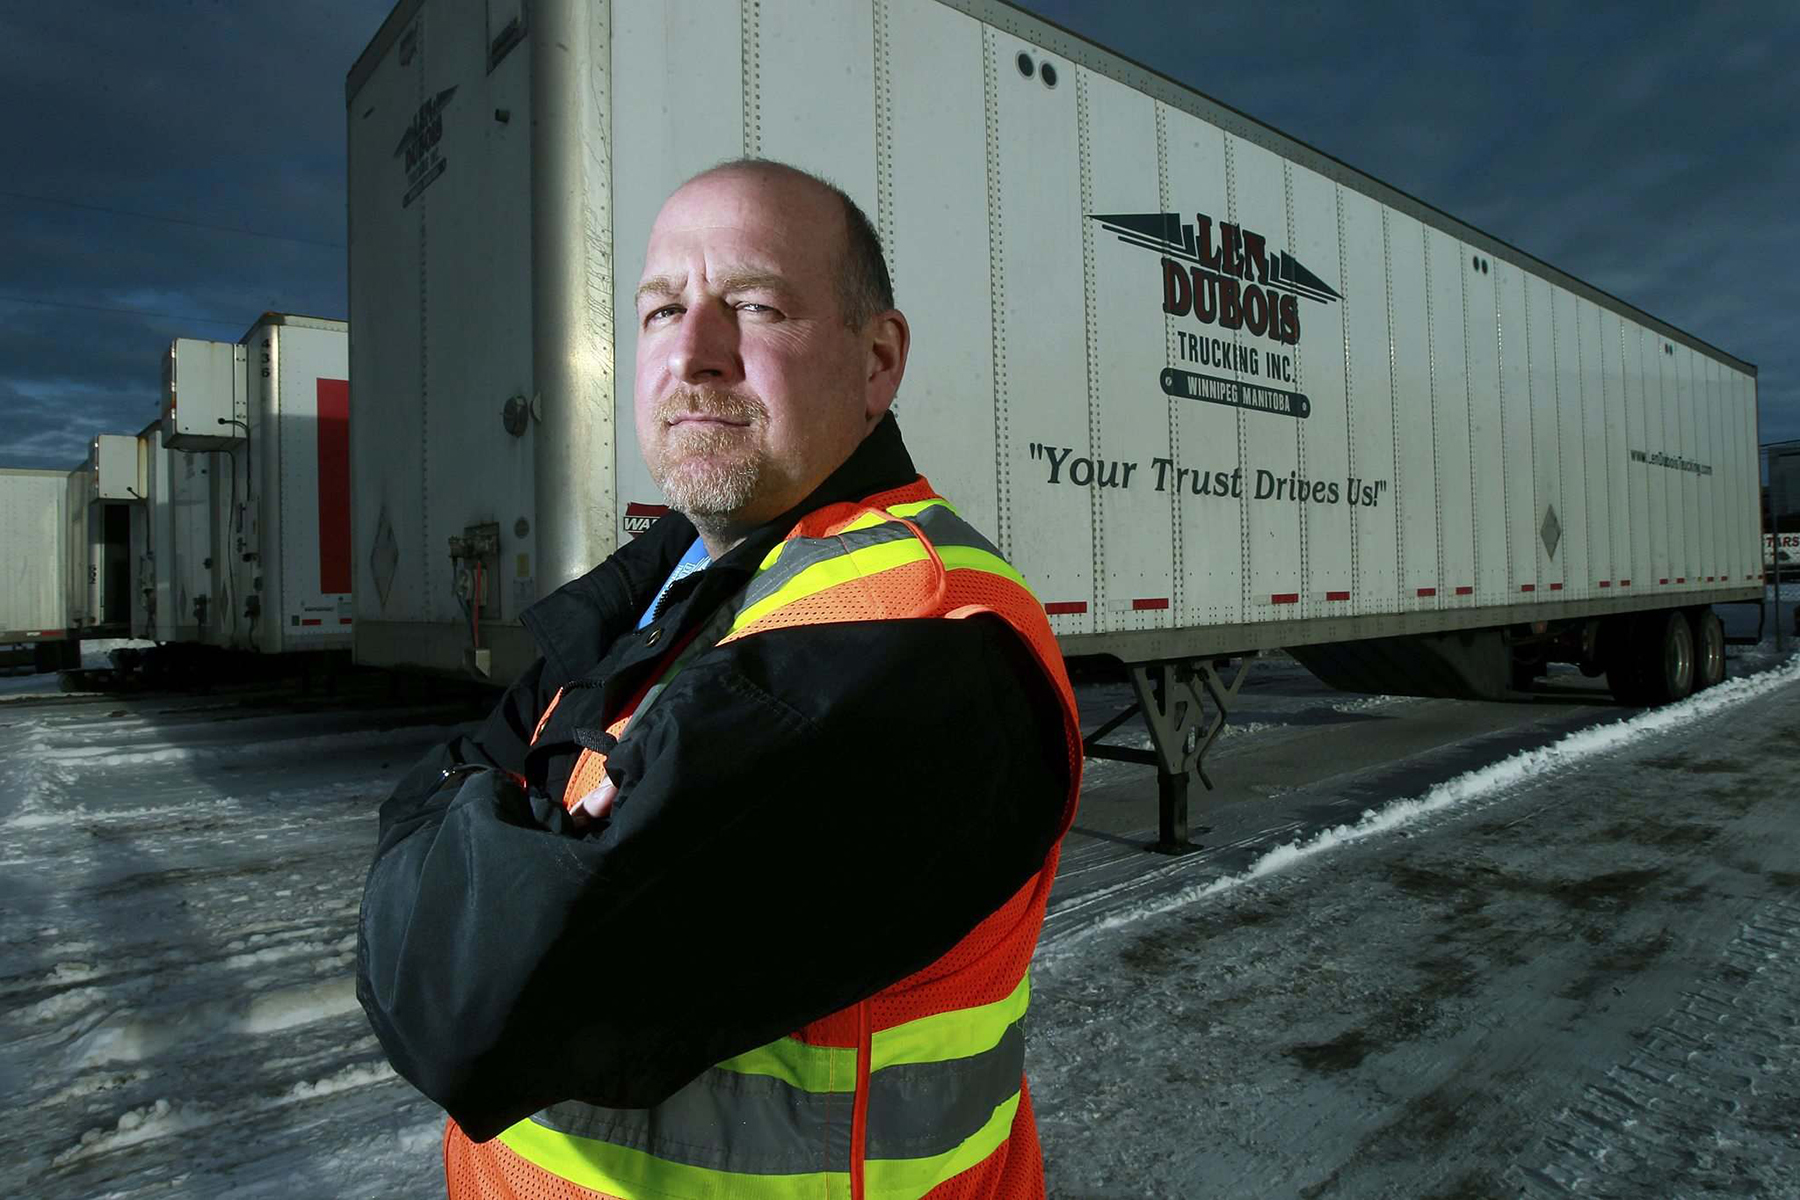 CentrePort home base for some of country's largest trucking firms